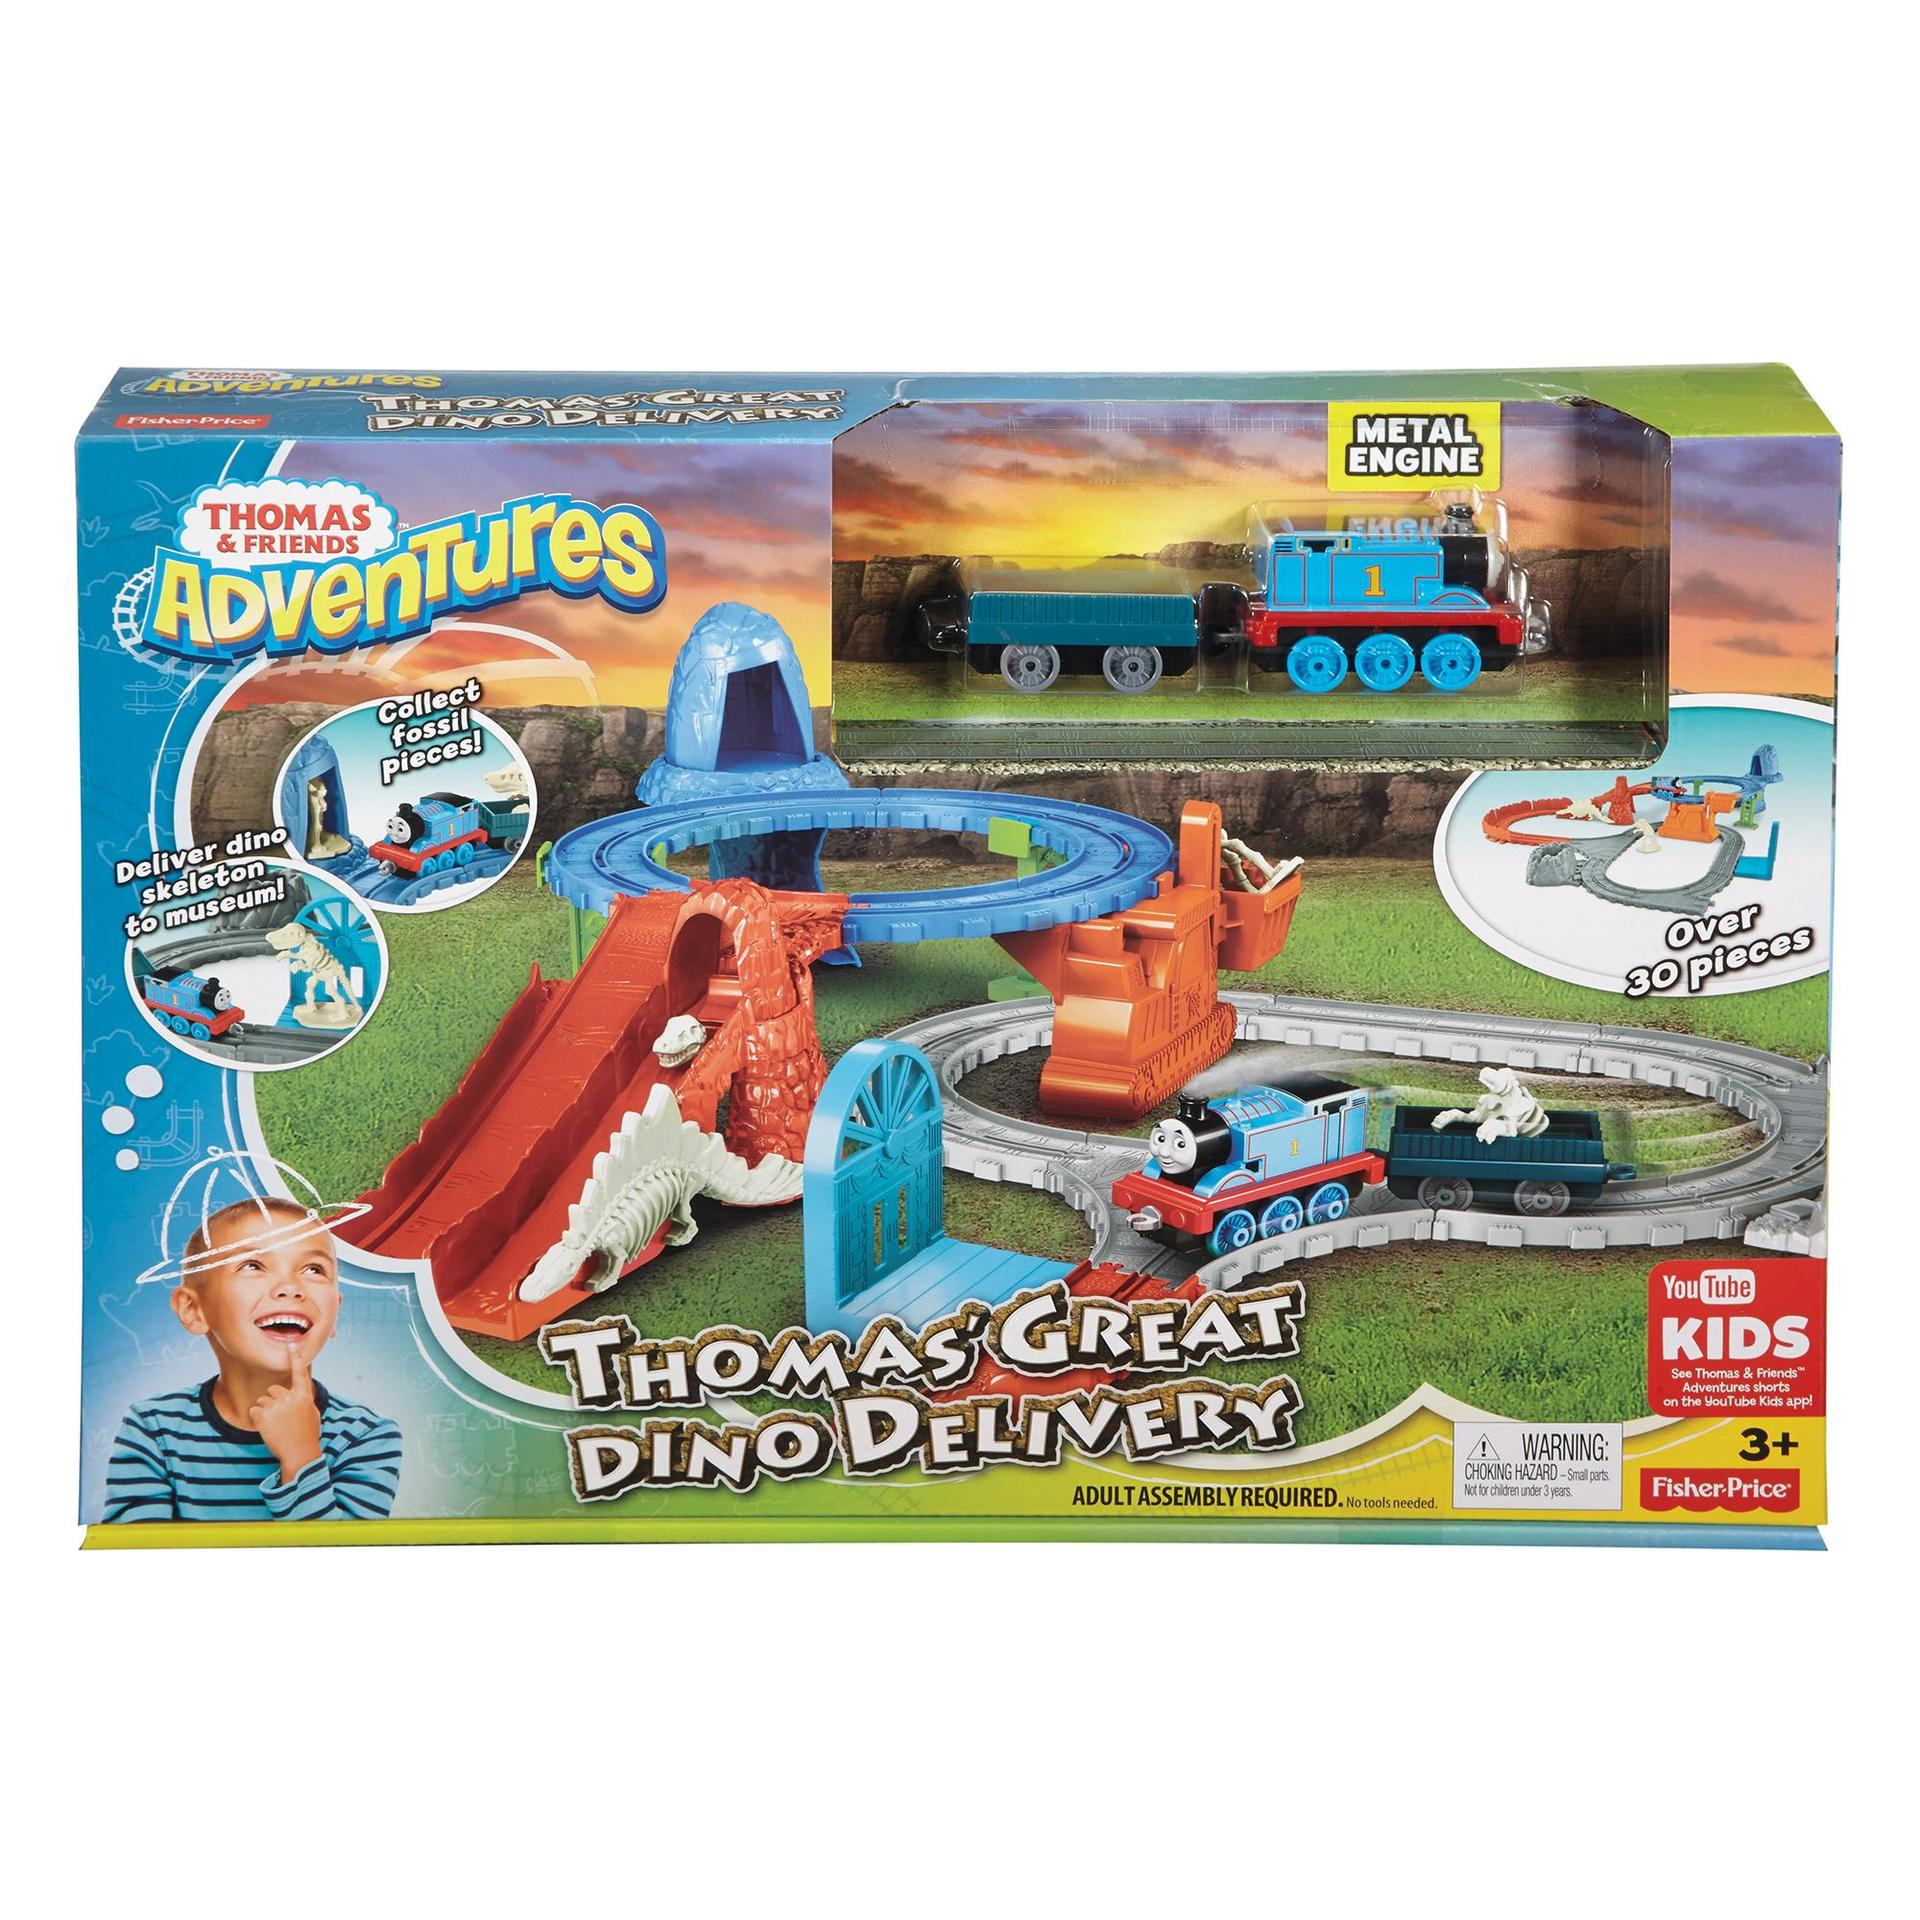 THOMAS & FRIENDS ADVENTURES THOMAS GREAT DINO DELIVERY